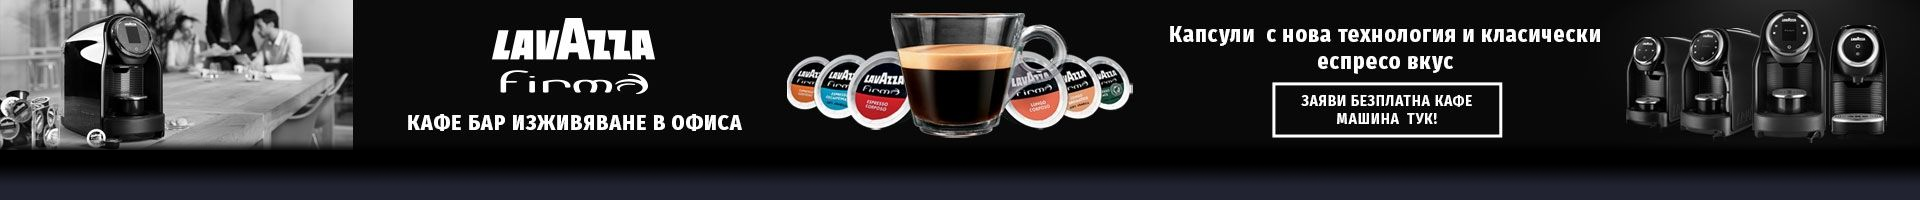 Lavazza footer bar